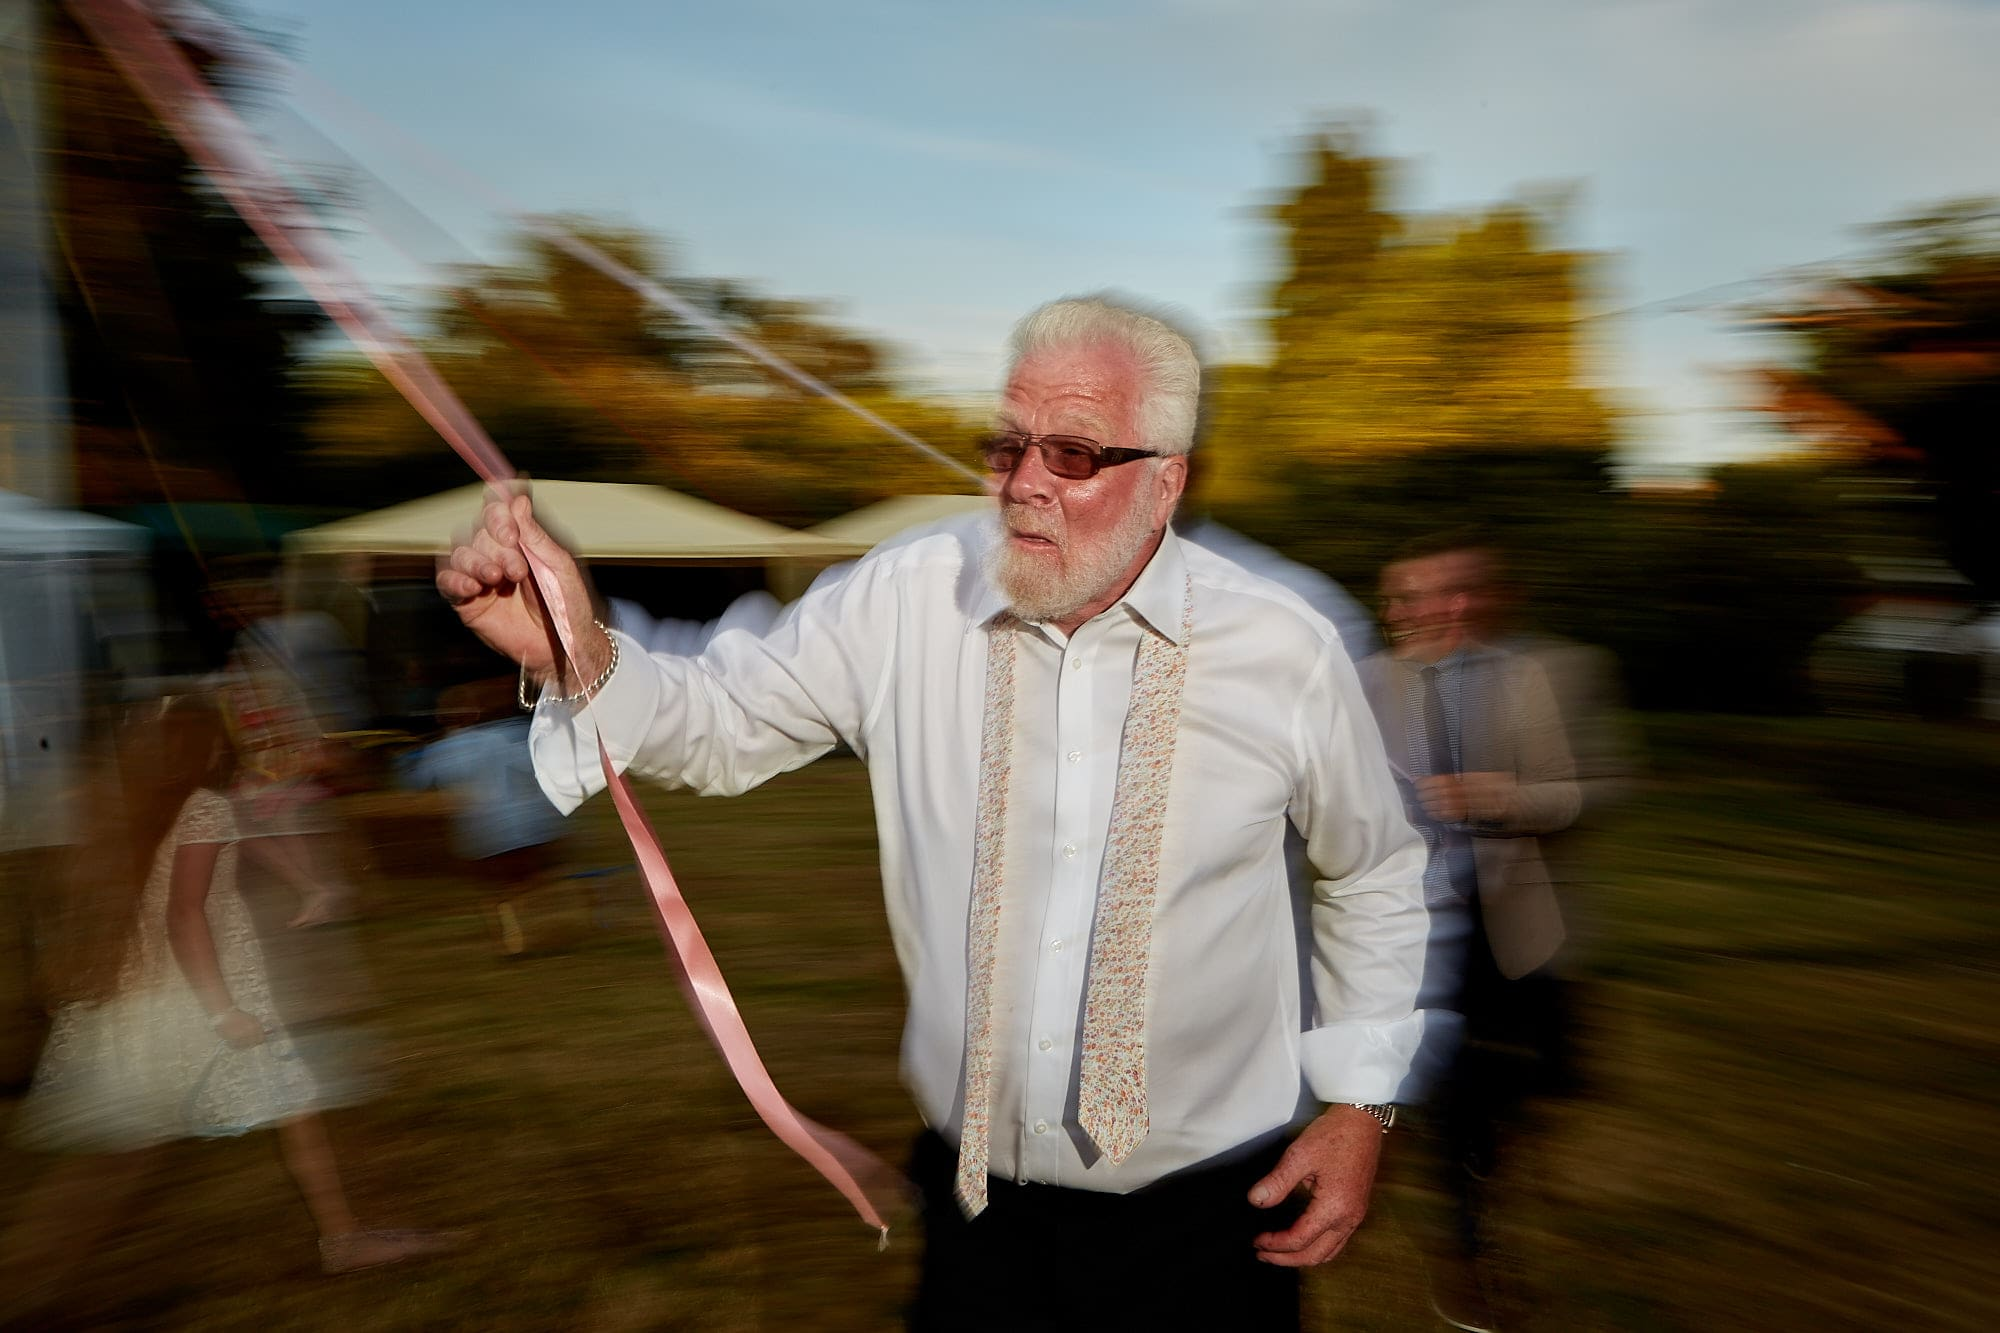 A man rushing round a maypole enjoying himself on his daughters wedding day in Lincolnshire.